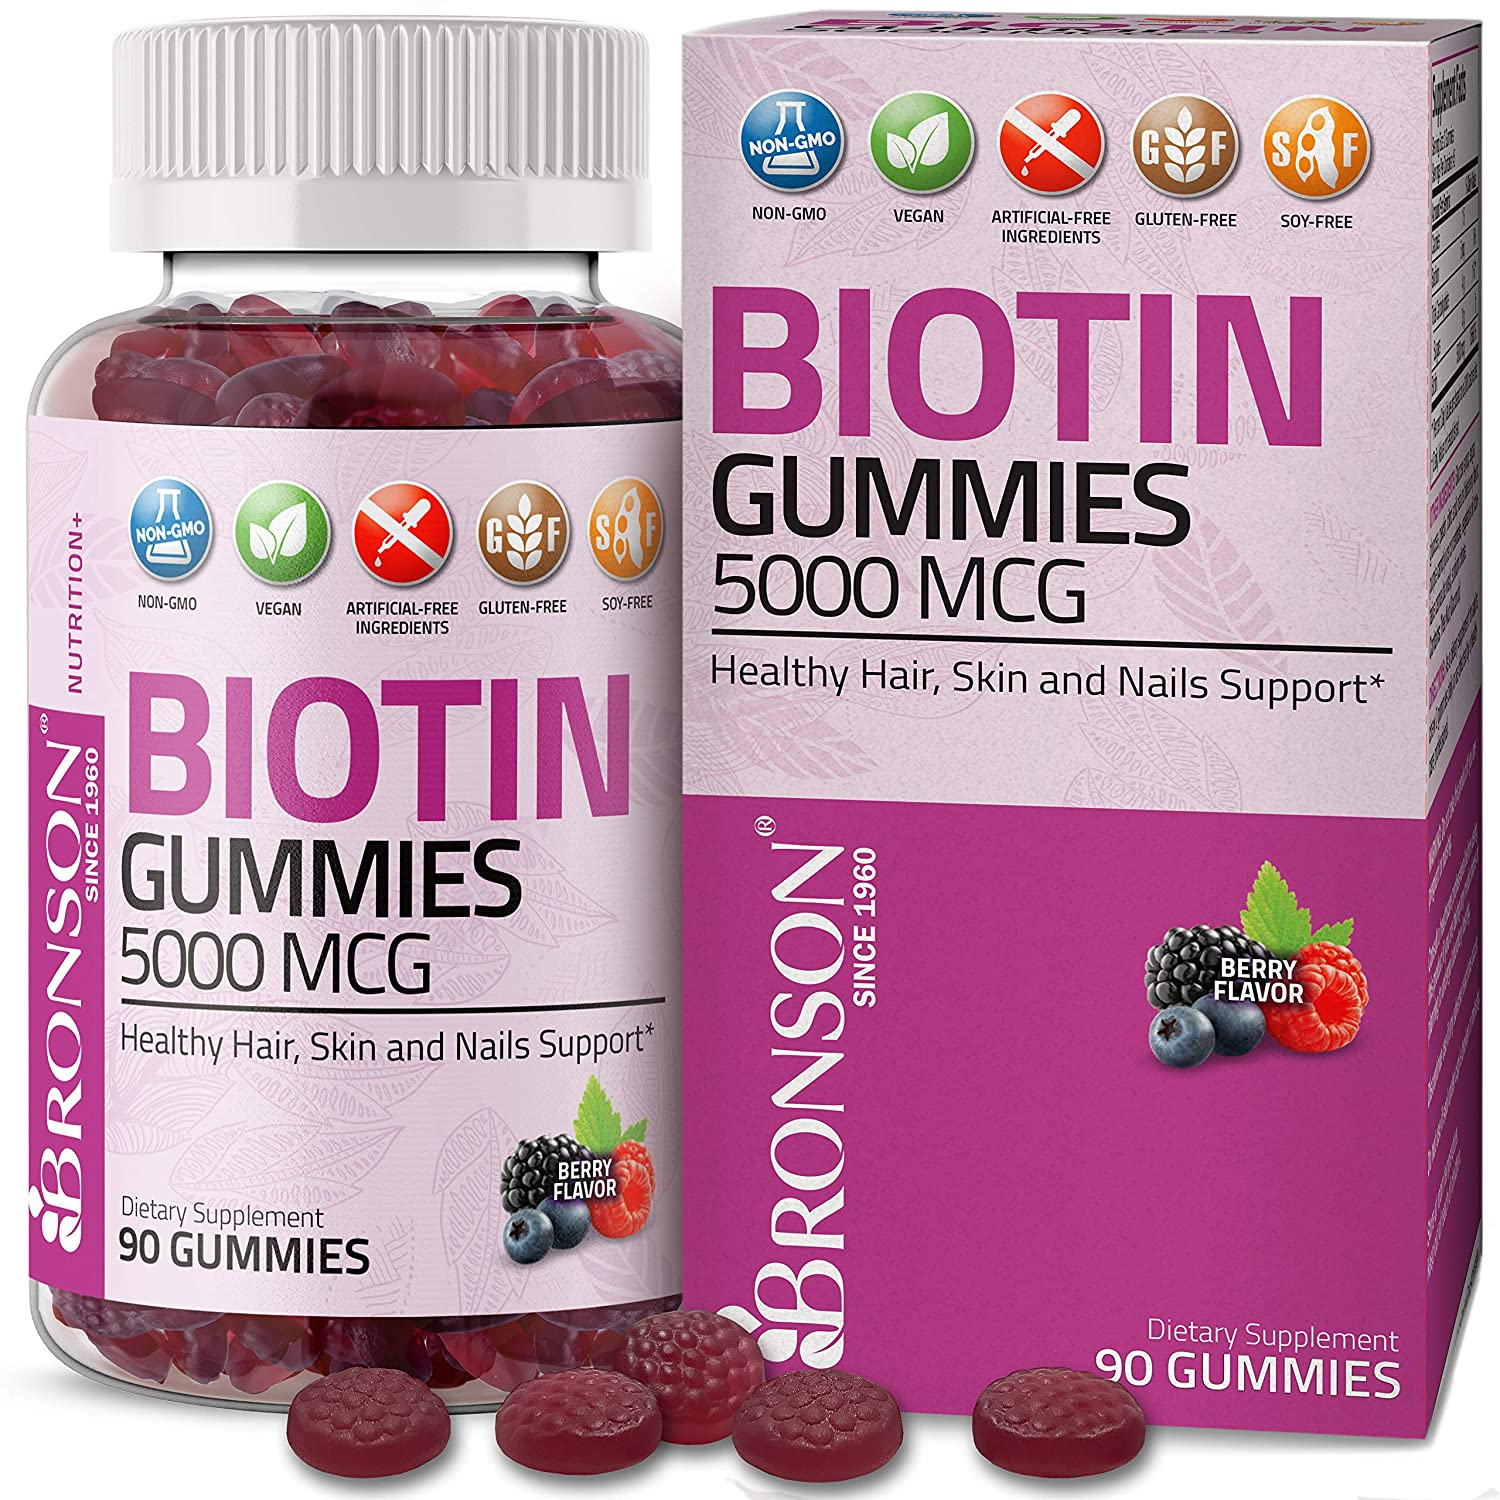 Bronson High Potency Biotin Gummies 5000 mcg Natural Hair Skin & Nails, Vegan Pectin-Based Non-GMO Gluten & Soy Free, 90 Gummies